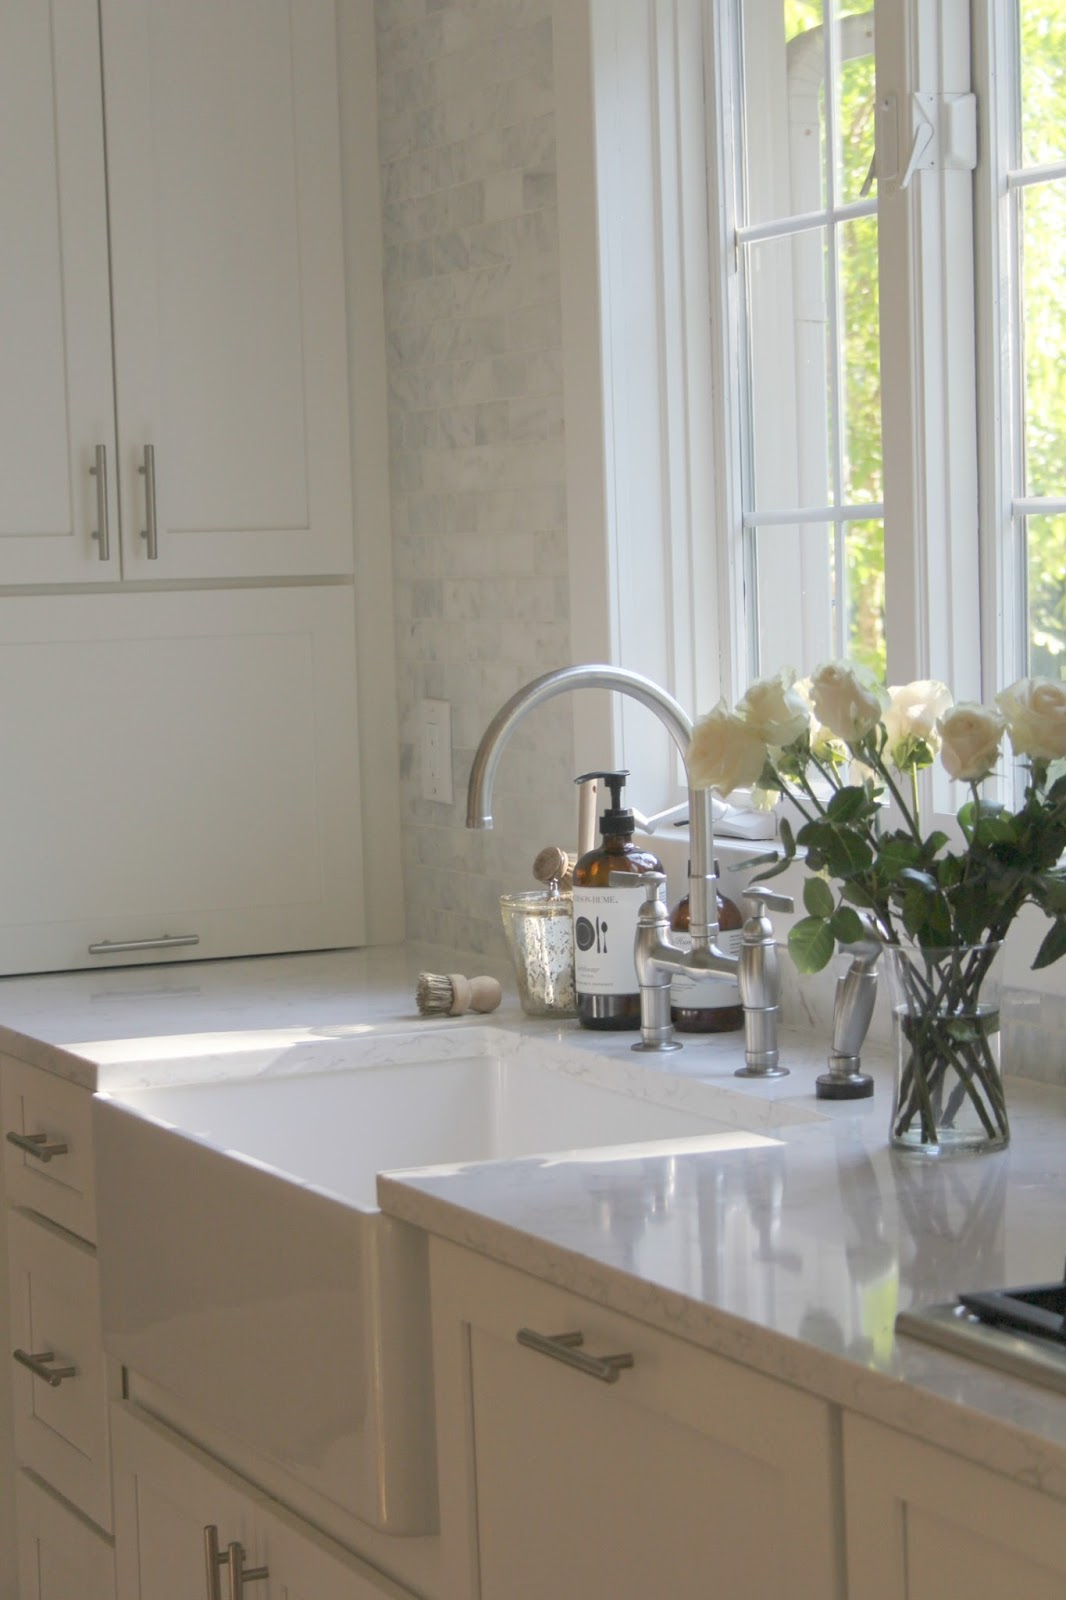 How to Choose the Right White Quartz for Kitchen Countertops – o Wood Cabinet Kitchen Countertop Ideas Html on marble countertop ideas, tile countertop ideas, glass countertop ideas, bar countertop ideas, kitchen cabinet kitchen design, floor countertop ideas, ceramic countertop ideas, painting countertop ideas, wood countertop ideas, granite countertop ideas, cheap kitchen countertop ideas, kitchen cabinet countertop color combinations, living room countertop ideas, paint countertop ideas, kitchen cabinet granite countertops, vanity countertop ideas, desk countertop ideas, bathroom countertop ideas,